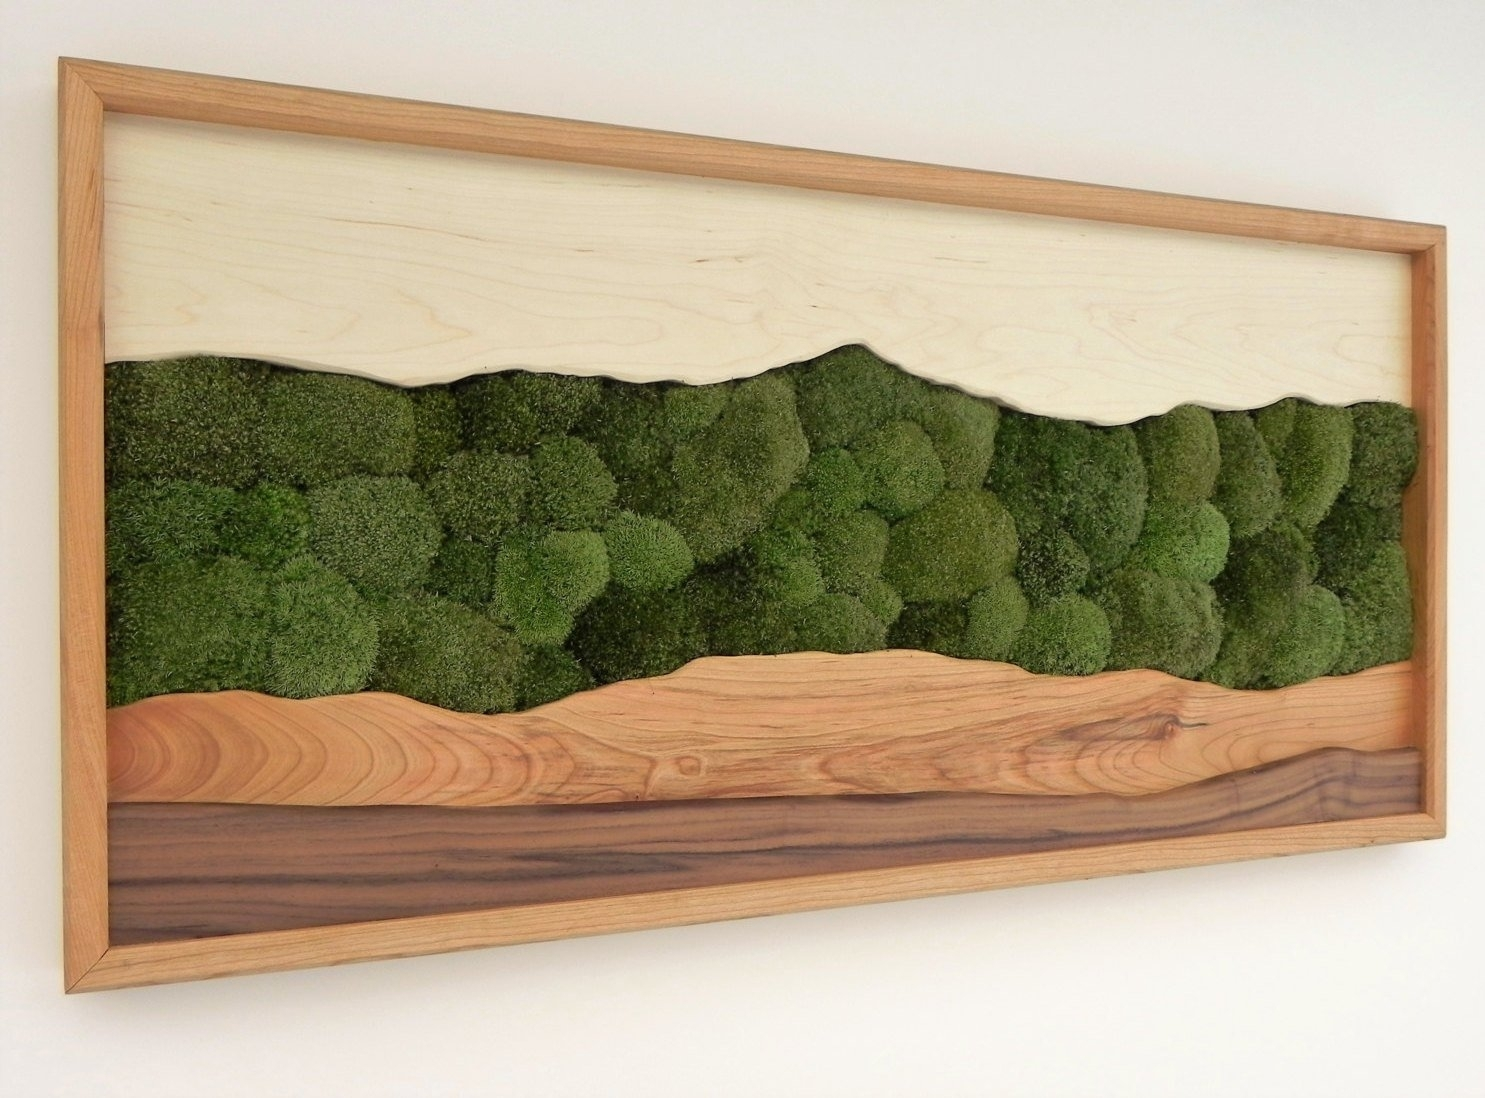 Green Mountain Moss Wall Art /sugar Maple, Cherry, Walnut, Preserved Regarding 2018 Moss Wall Art (View 6 of 20)